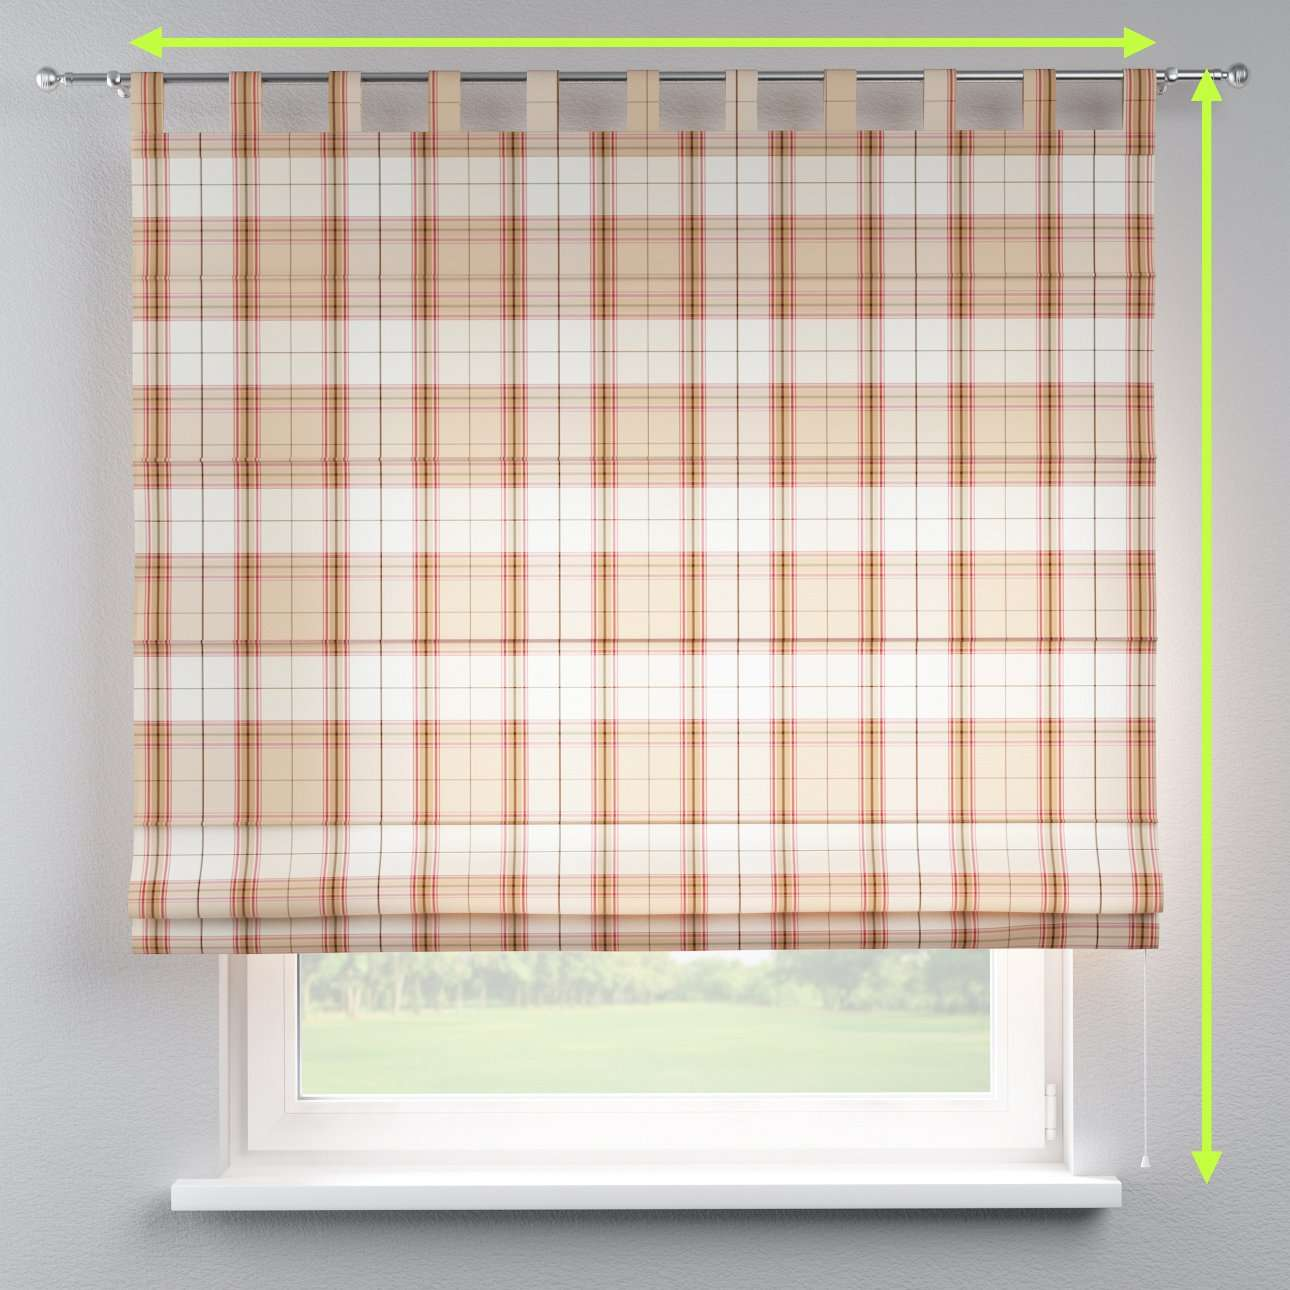 Verona tab top roman blind in collection Bristol, fabric: 125-09